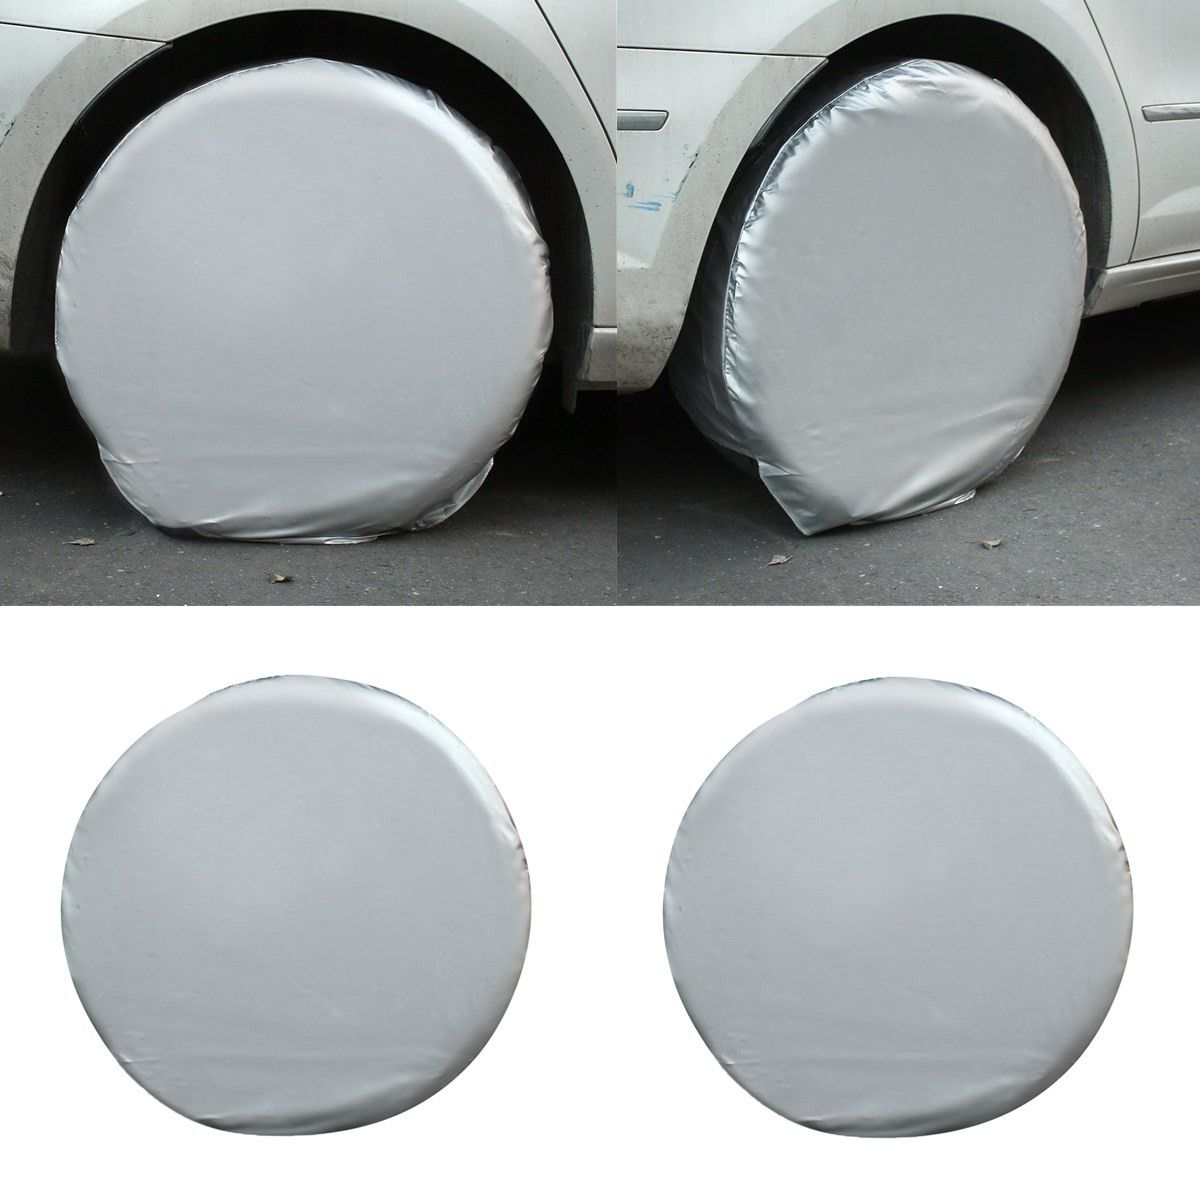 4PCs/Set  27''-29'' Car Auto Spare Wheels Tire Tyre Cover Heavy Duty Car Waterproof Tire Cover For RV Truck Trailer Motorhome